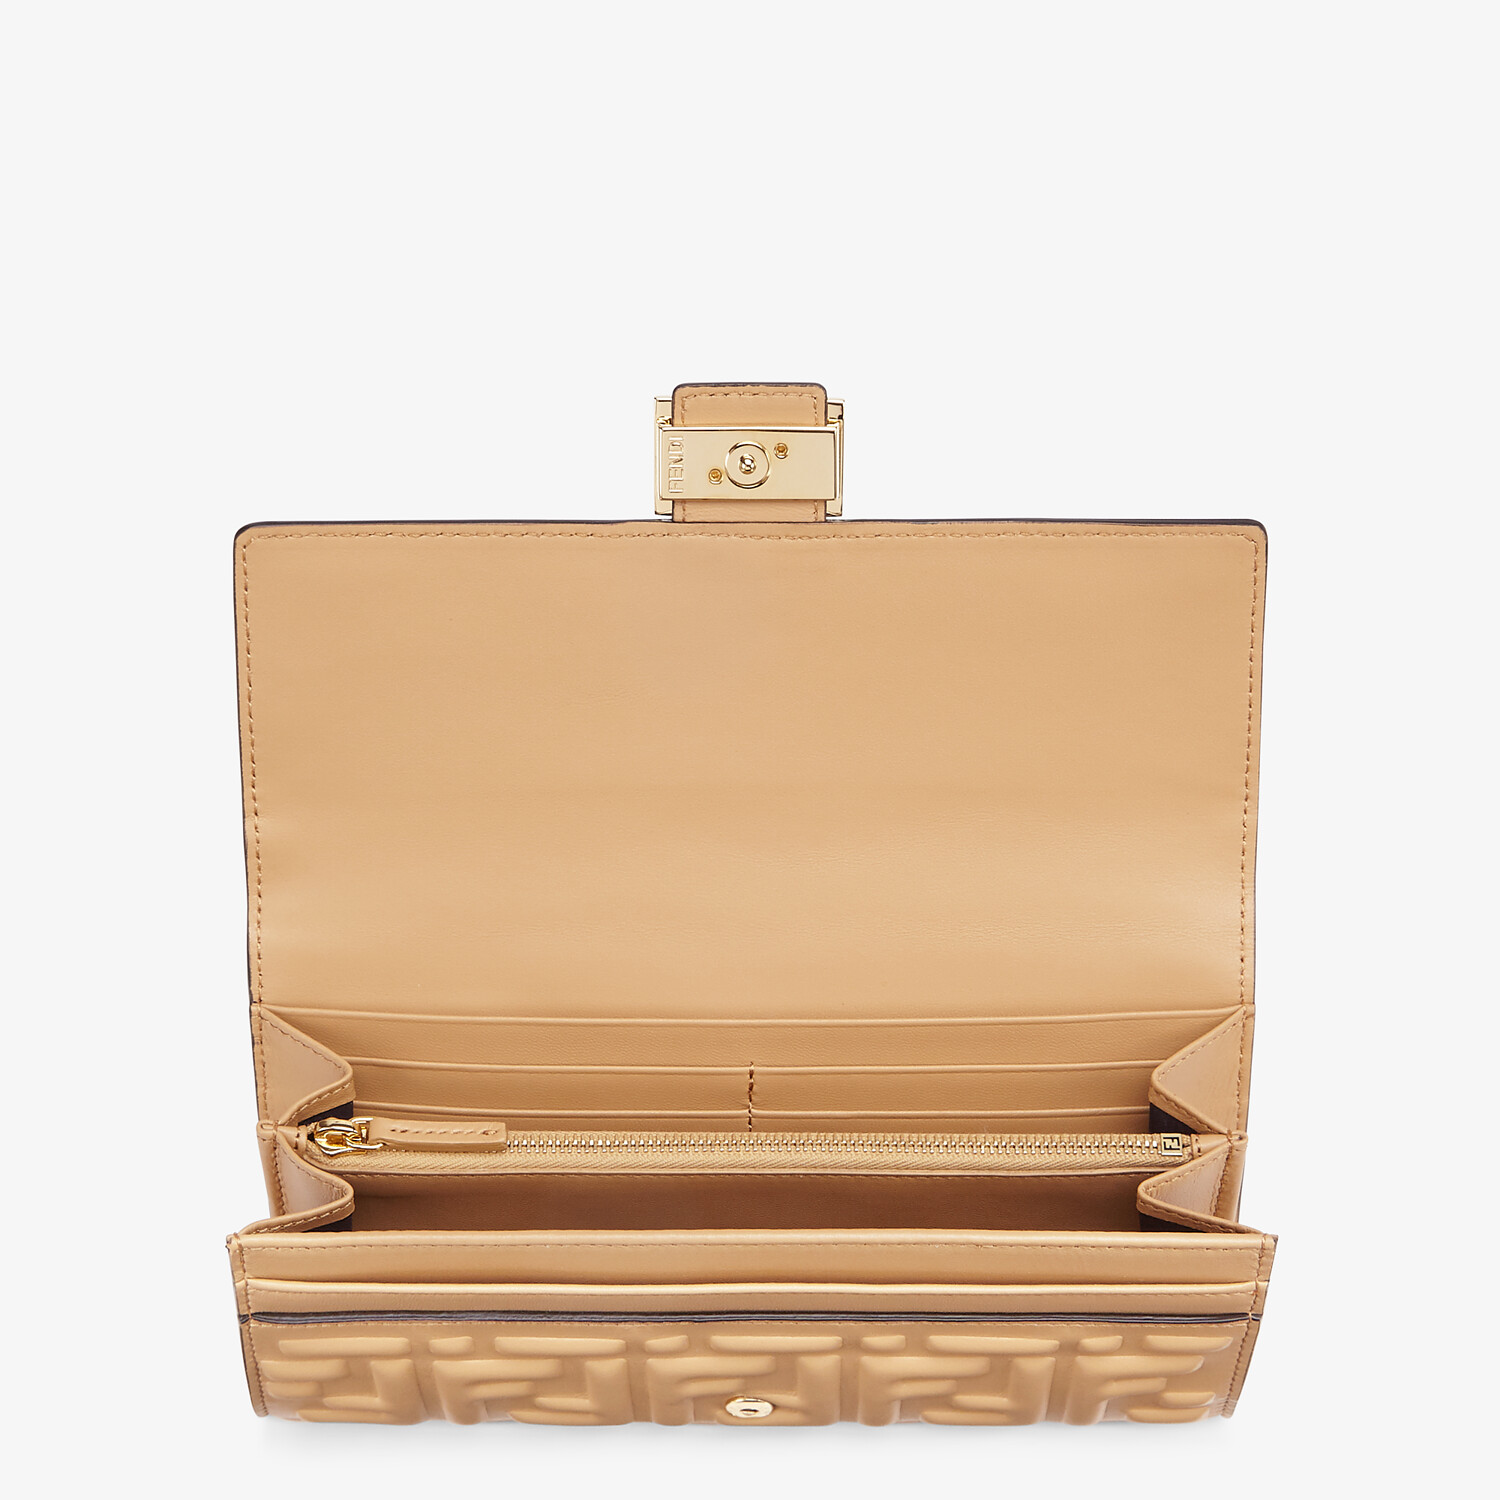 FENDI CONTINENTAL - Beige nappa leather wallet - view 3 detail